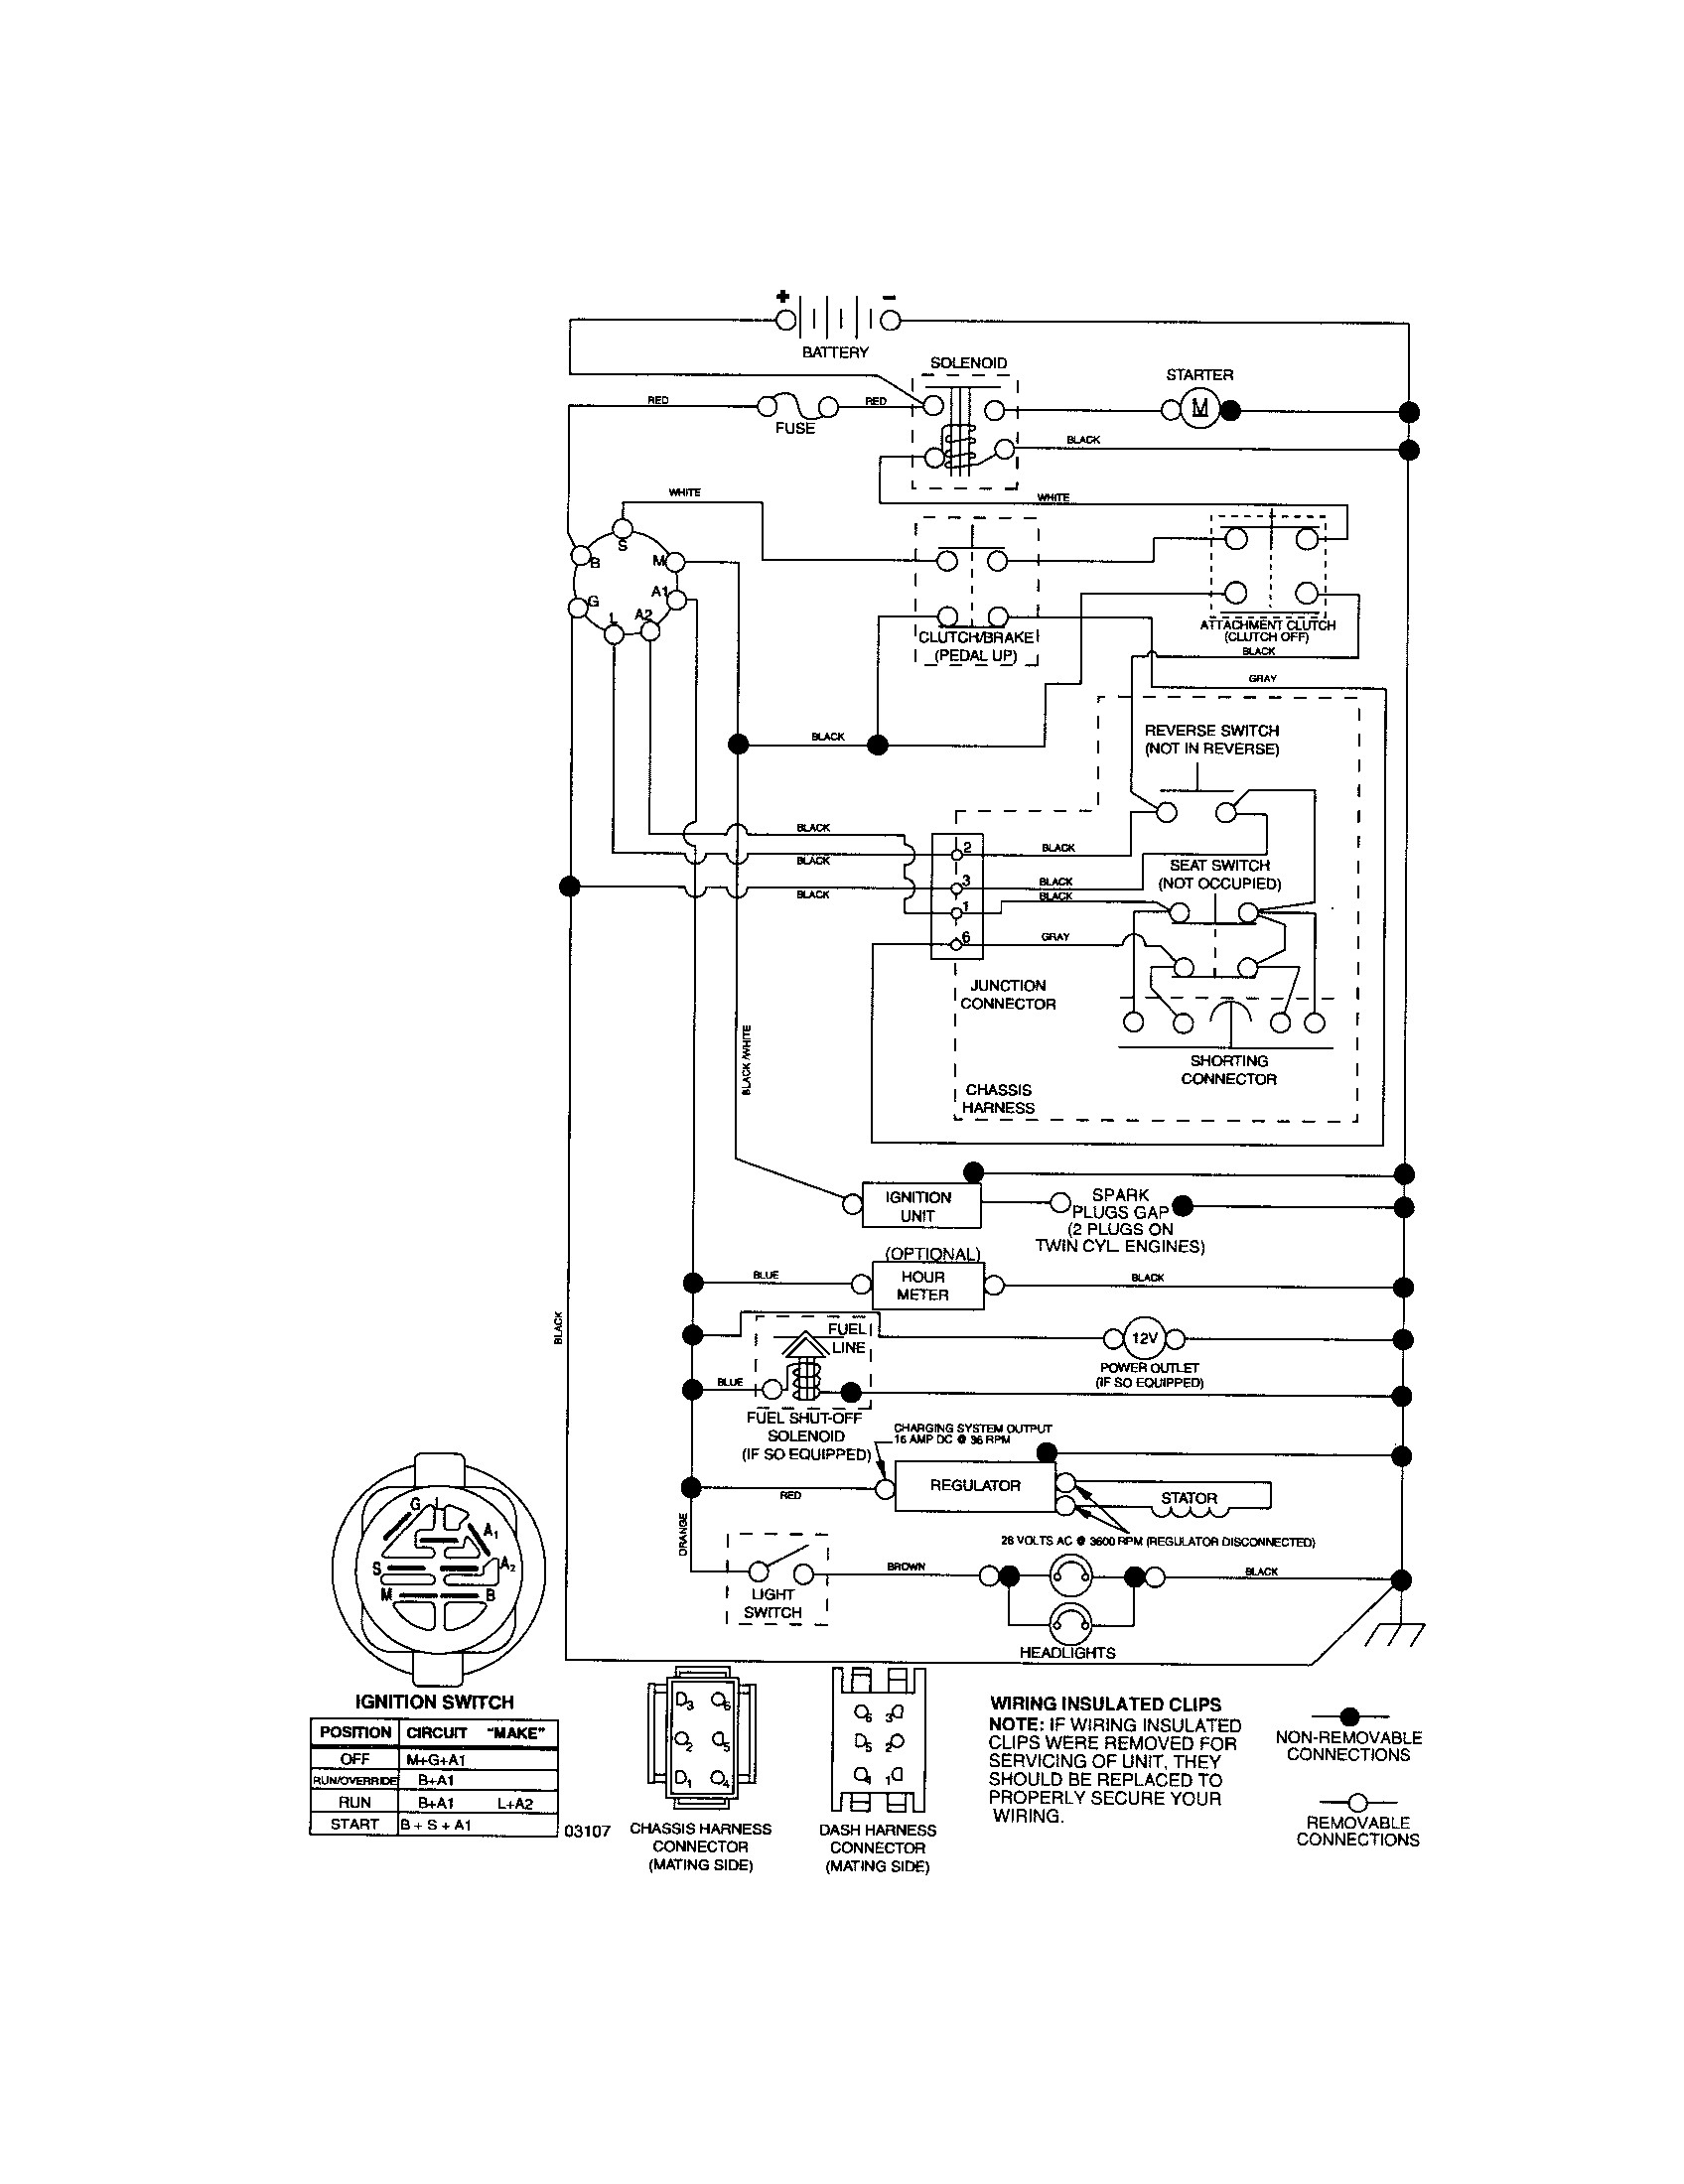 Craftsman Pto Switch Wiring Diagram